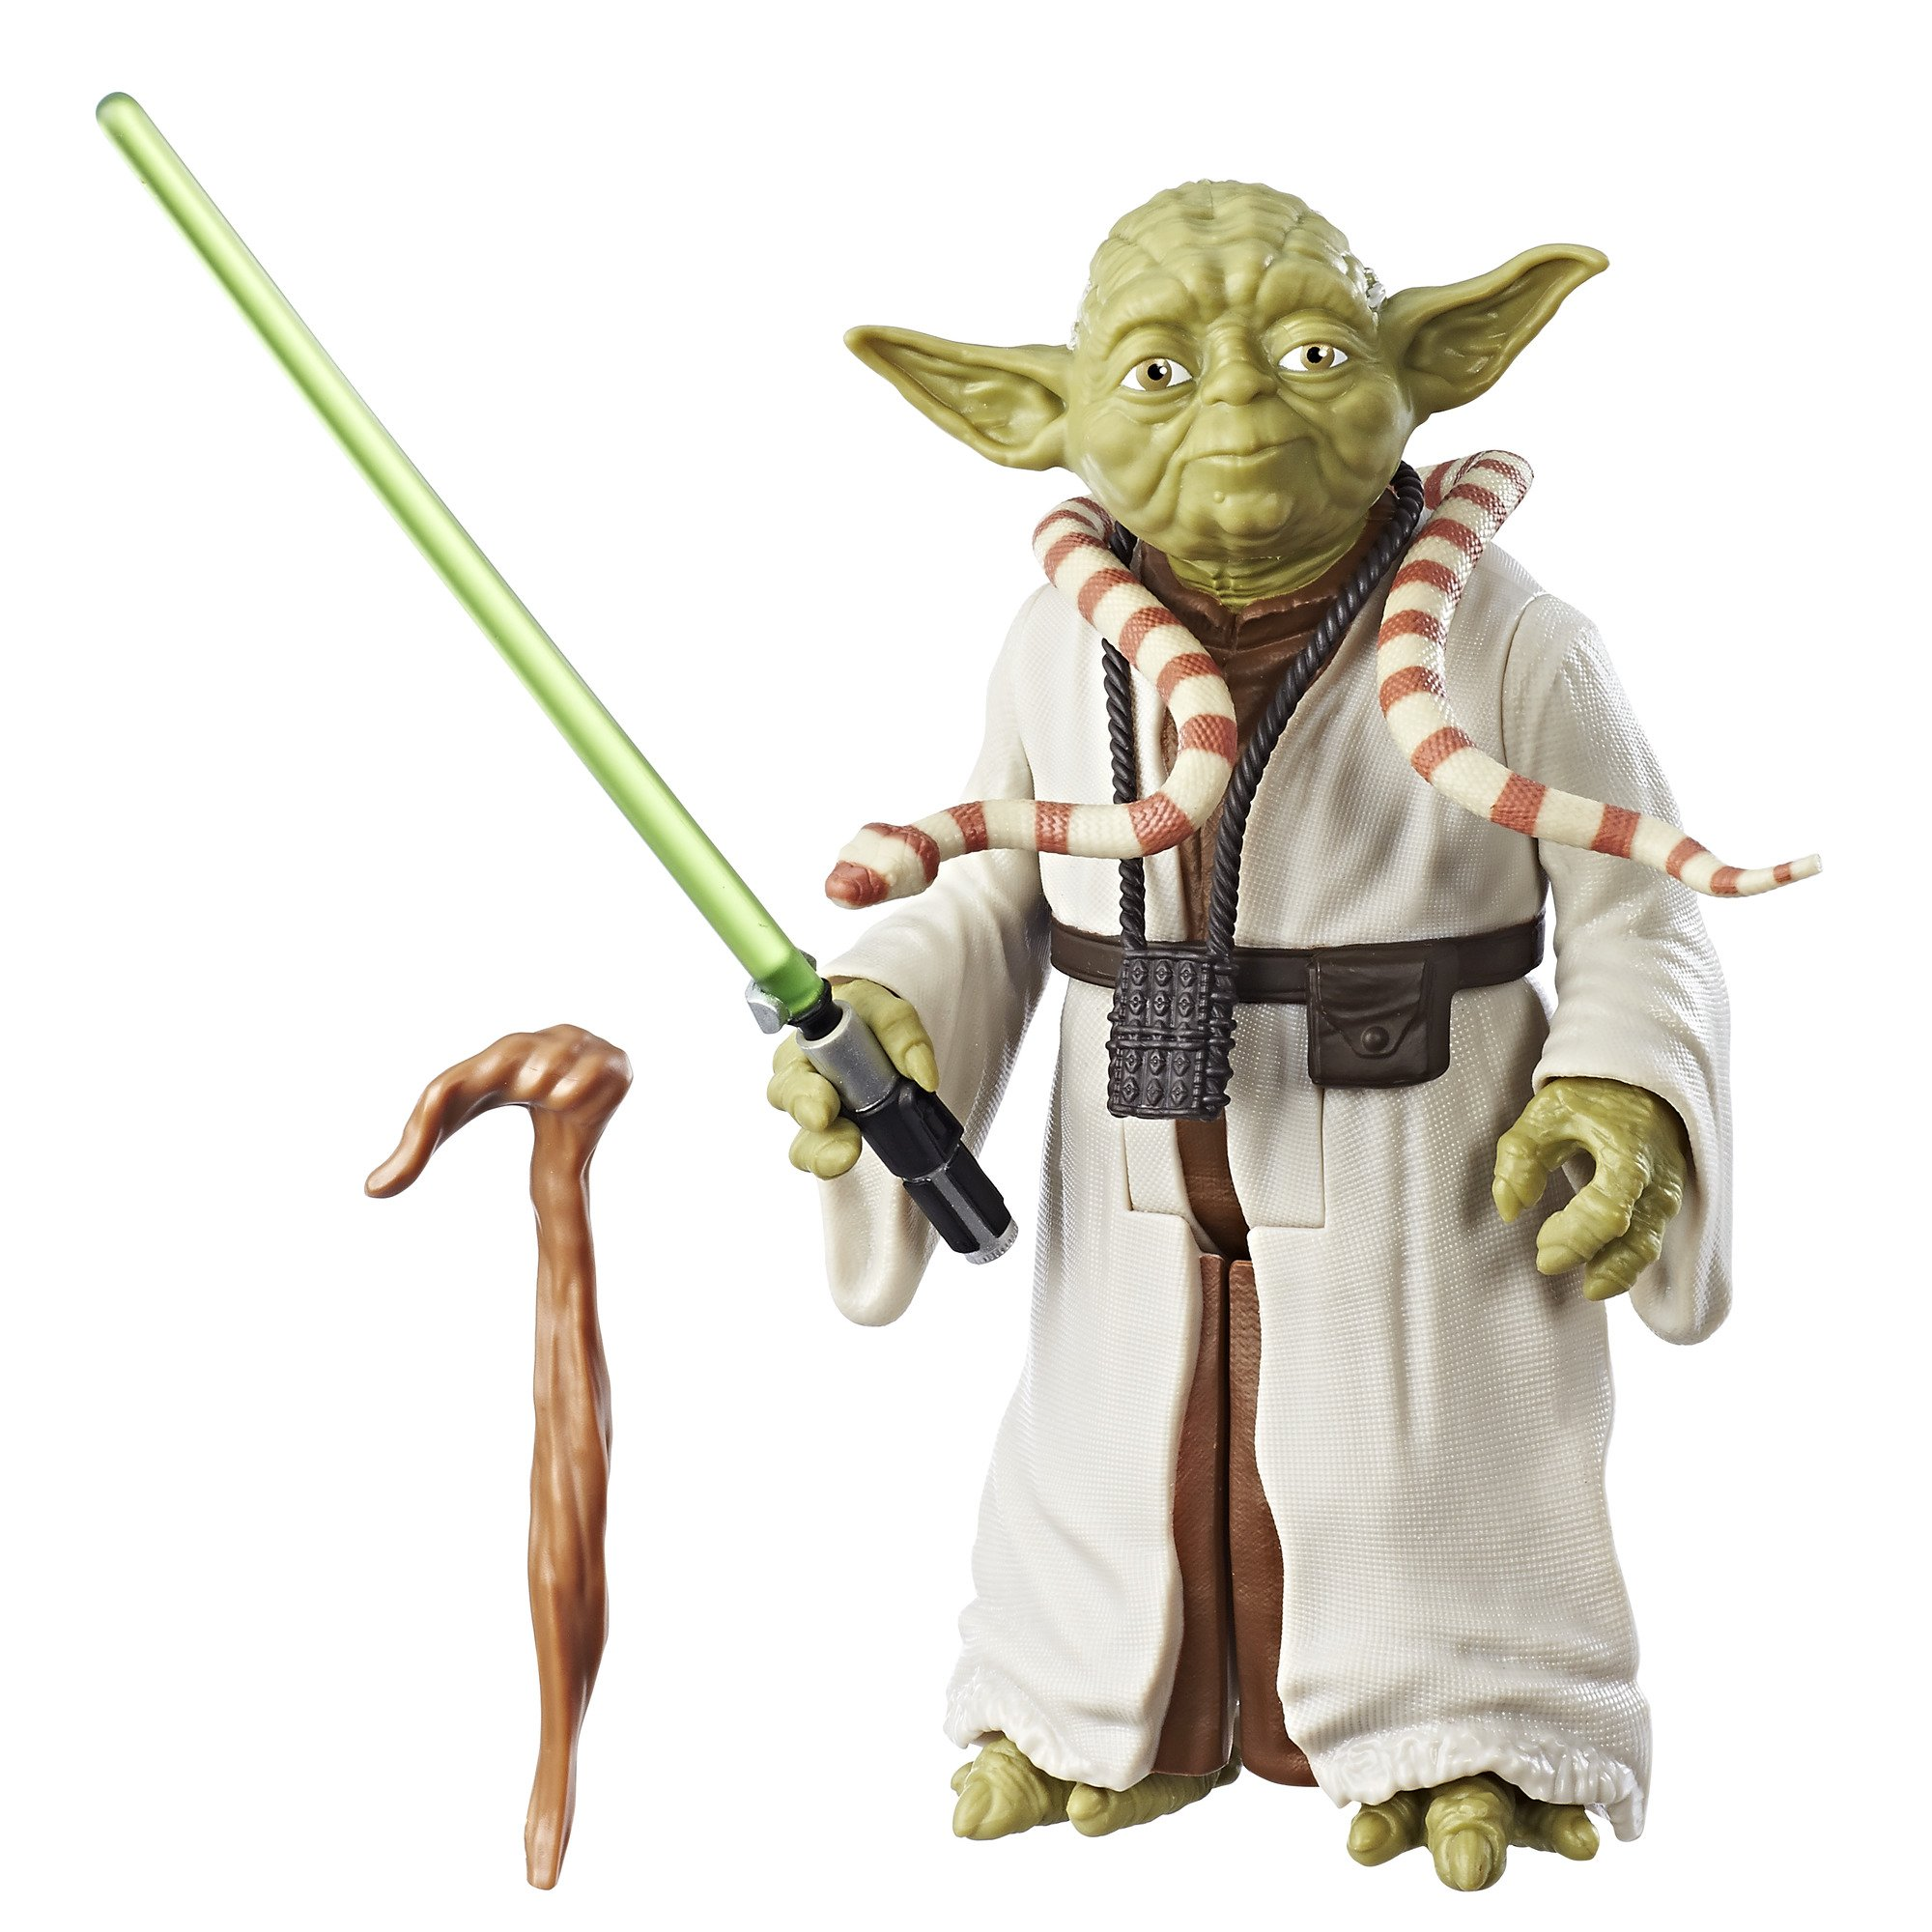 Star Wars The Empire Strikes Back Yoda Figure product image